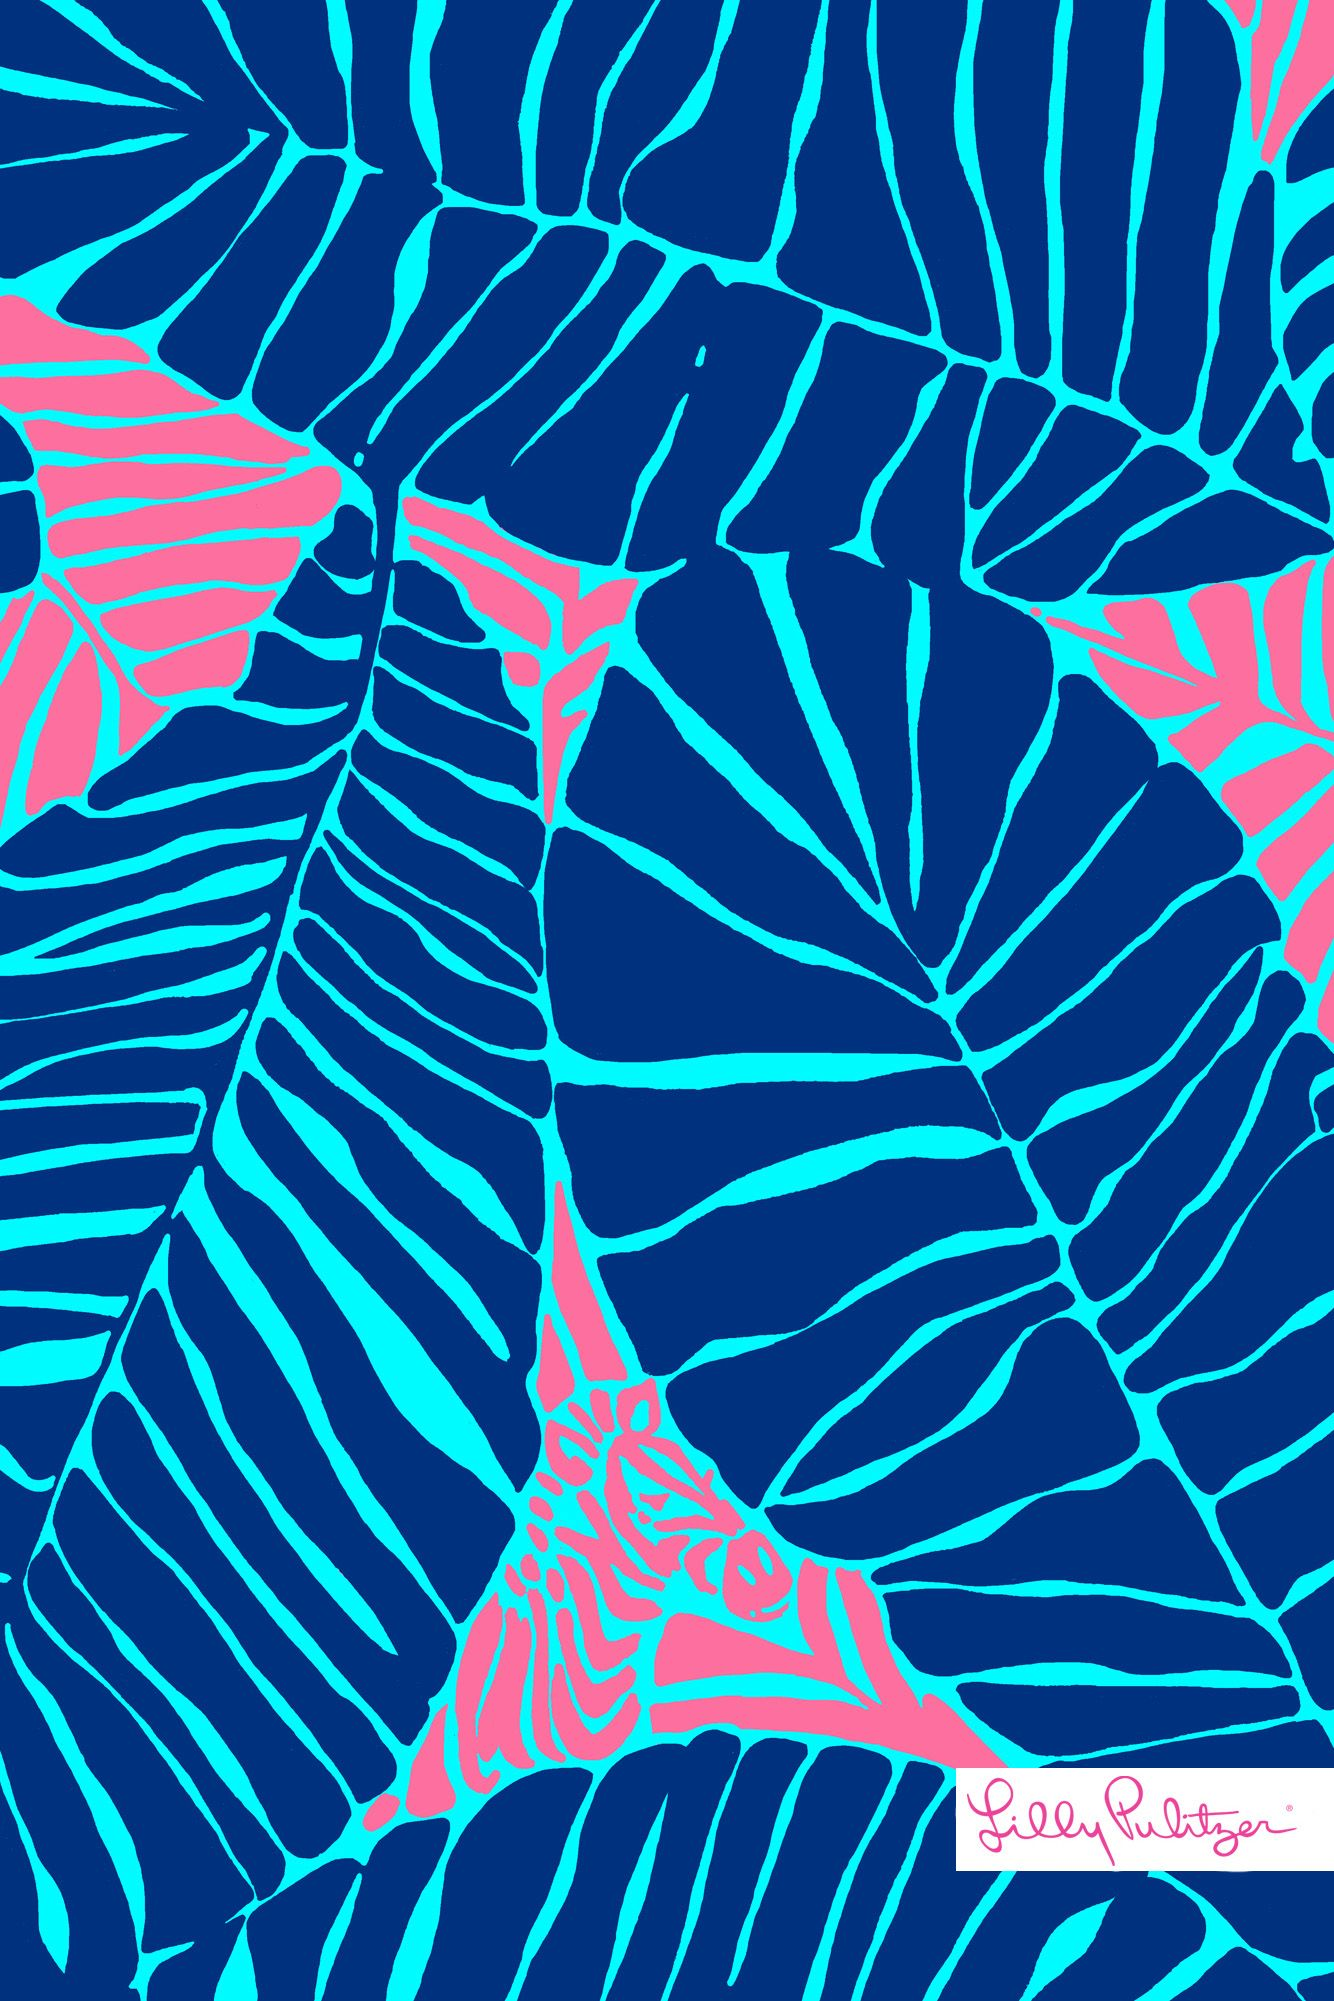 Lilly pulitzer under the palm iphone wallpaper patterns - Lilly pulitzer iphone wallpaper ...